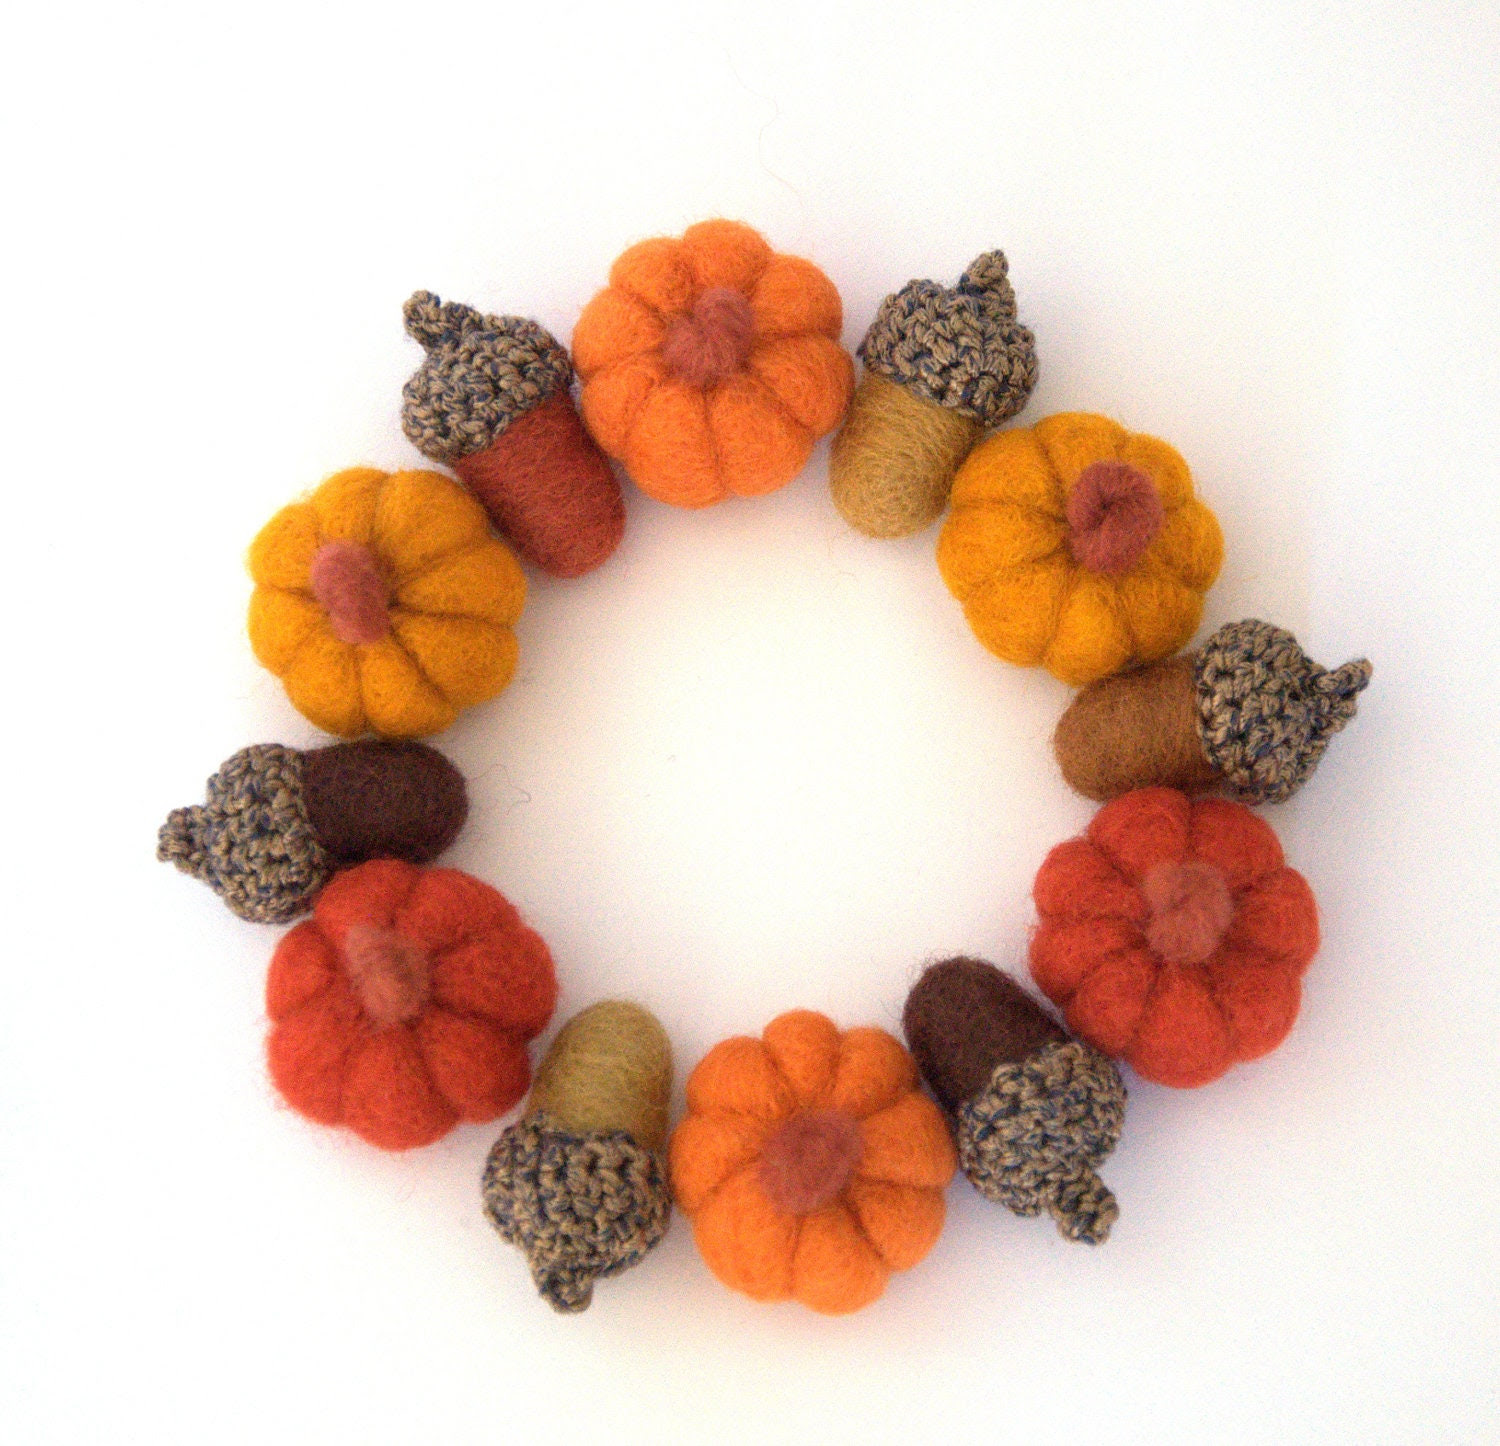 Autumn Weddings favor 6 small wool Pumpkins handmade felted decor gift Halloween autumn wreath Christmas ornament garland Thanksgiving table - astashtoys